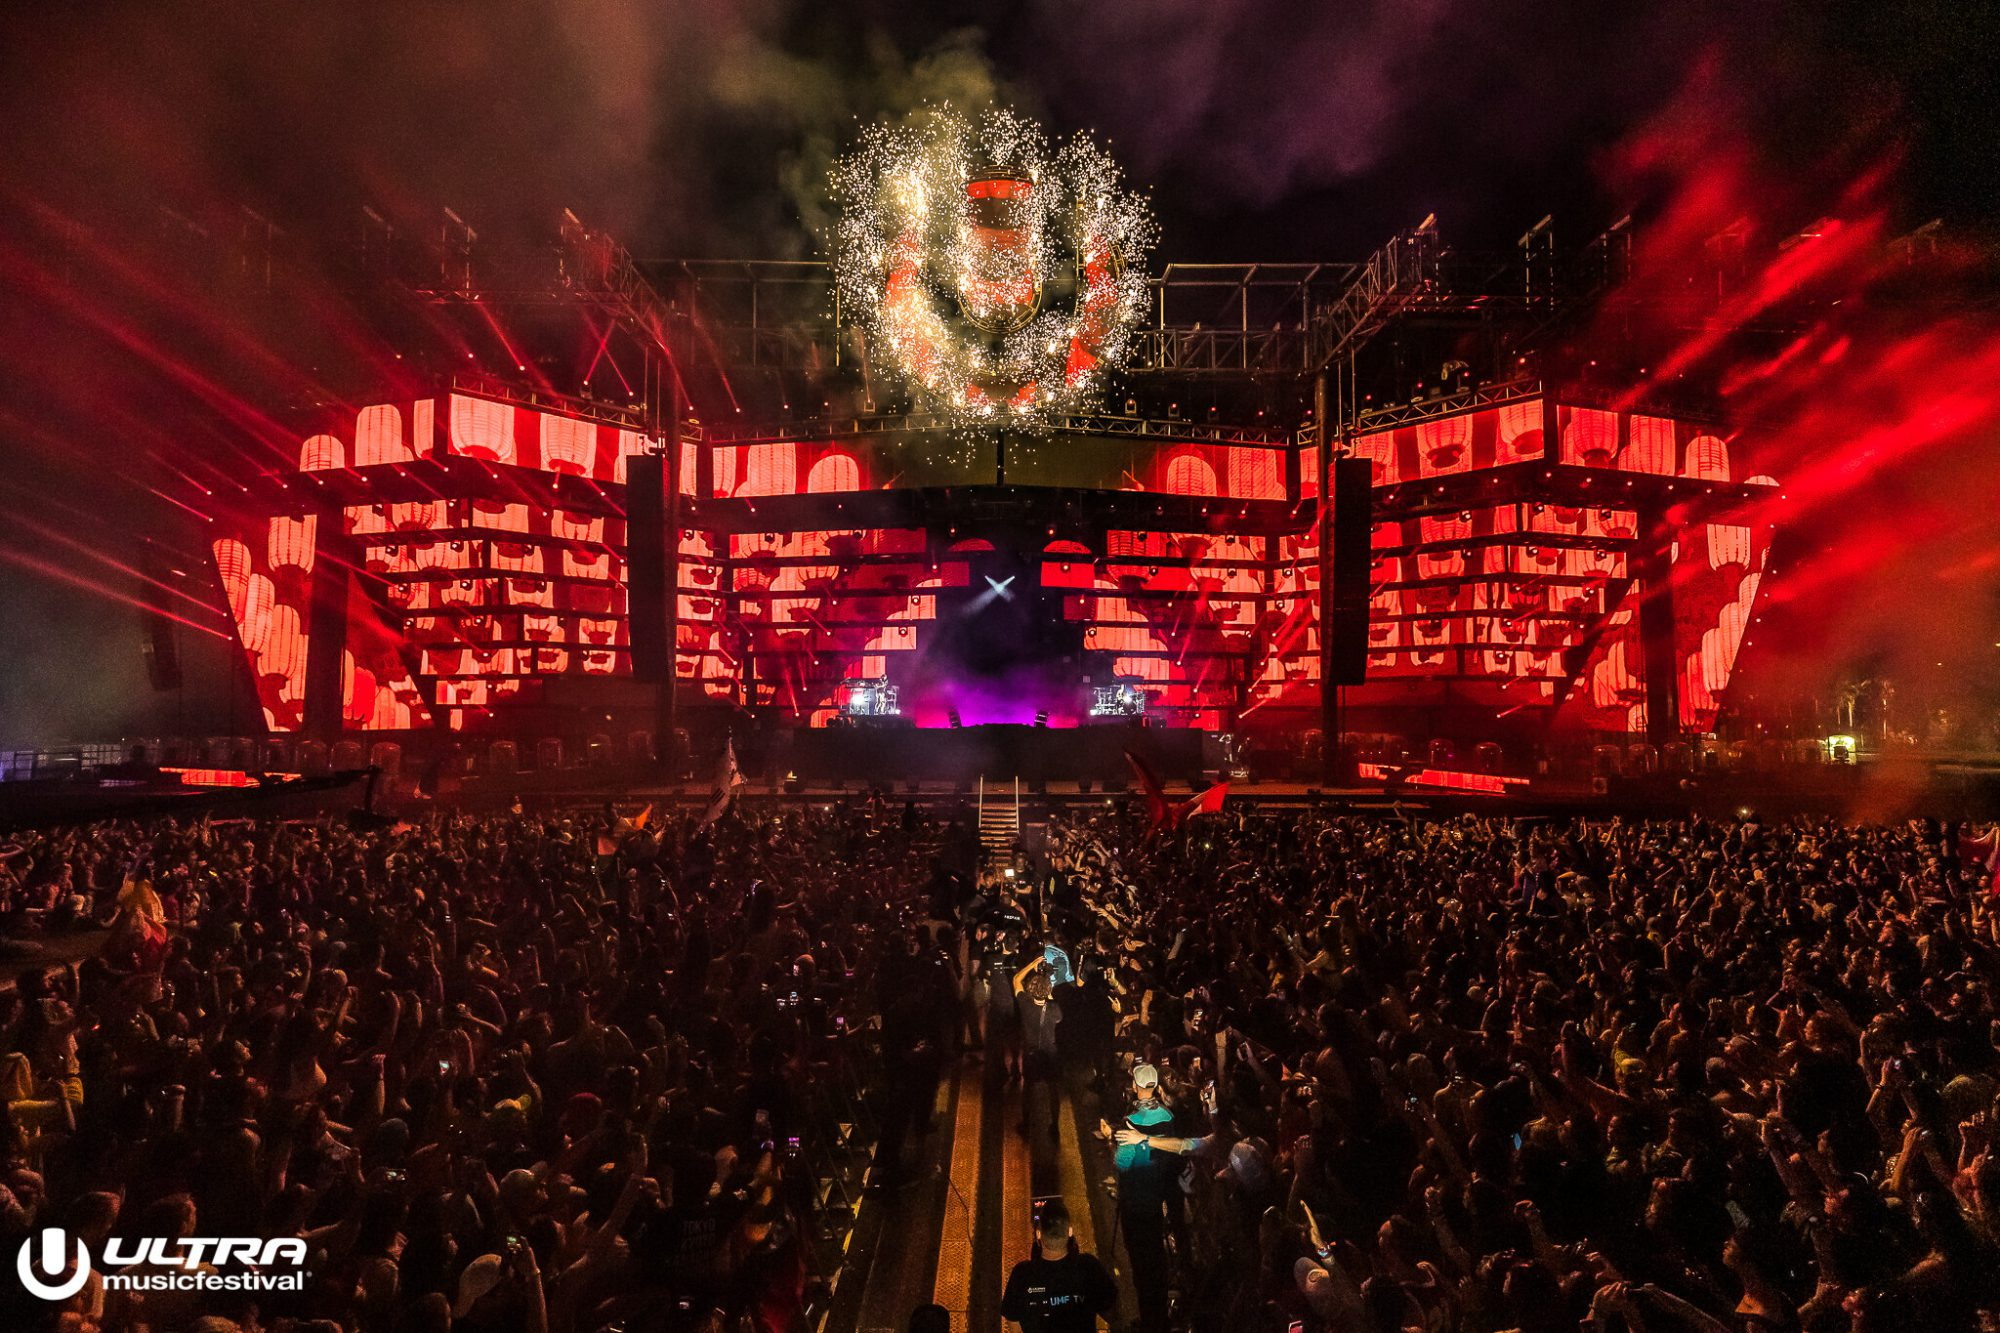 Ultra terminates license with City of Miami